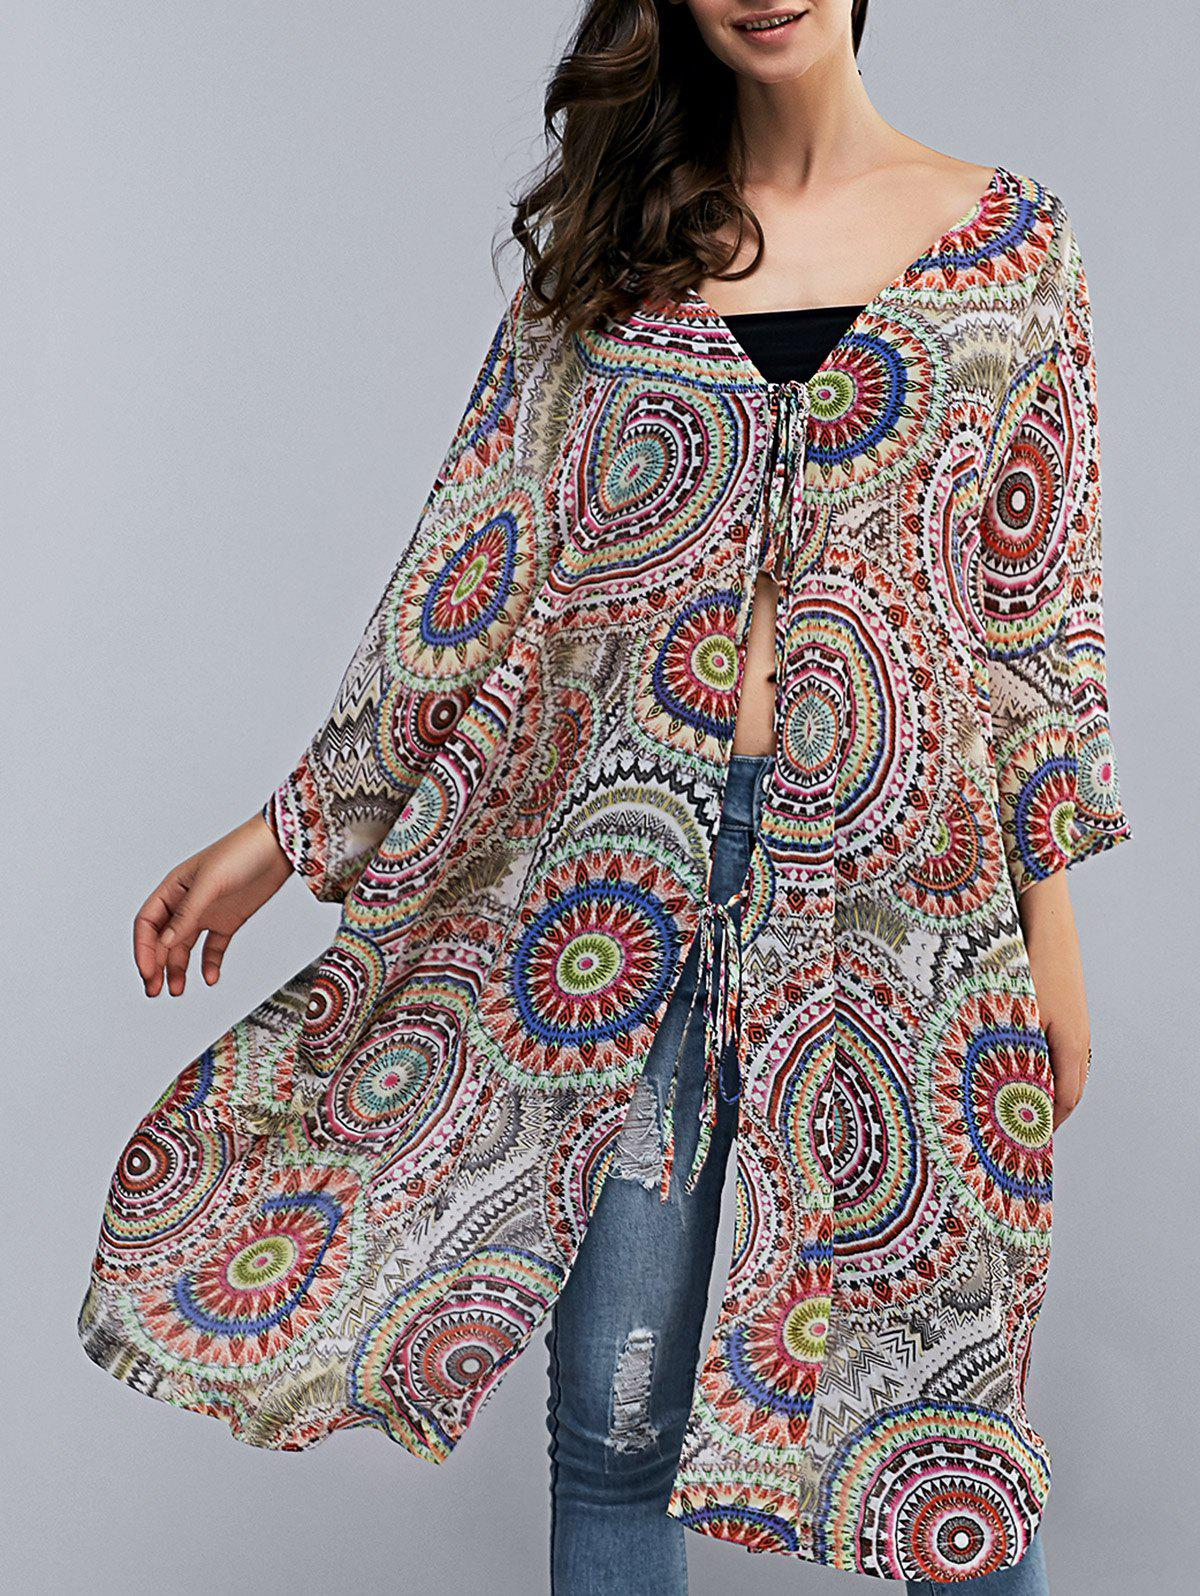 Batwing Sleeve Tribal Print Long Kimono Cover Up - COLORMIX L